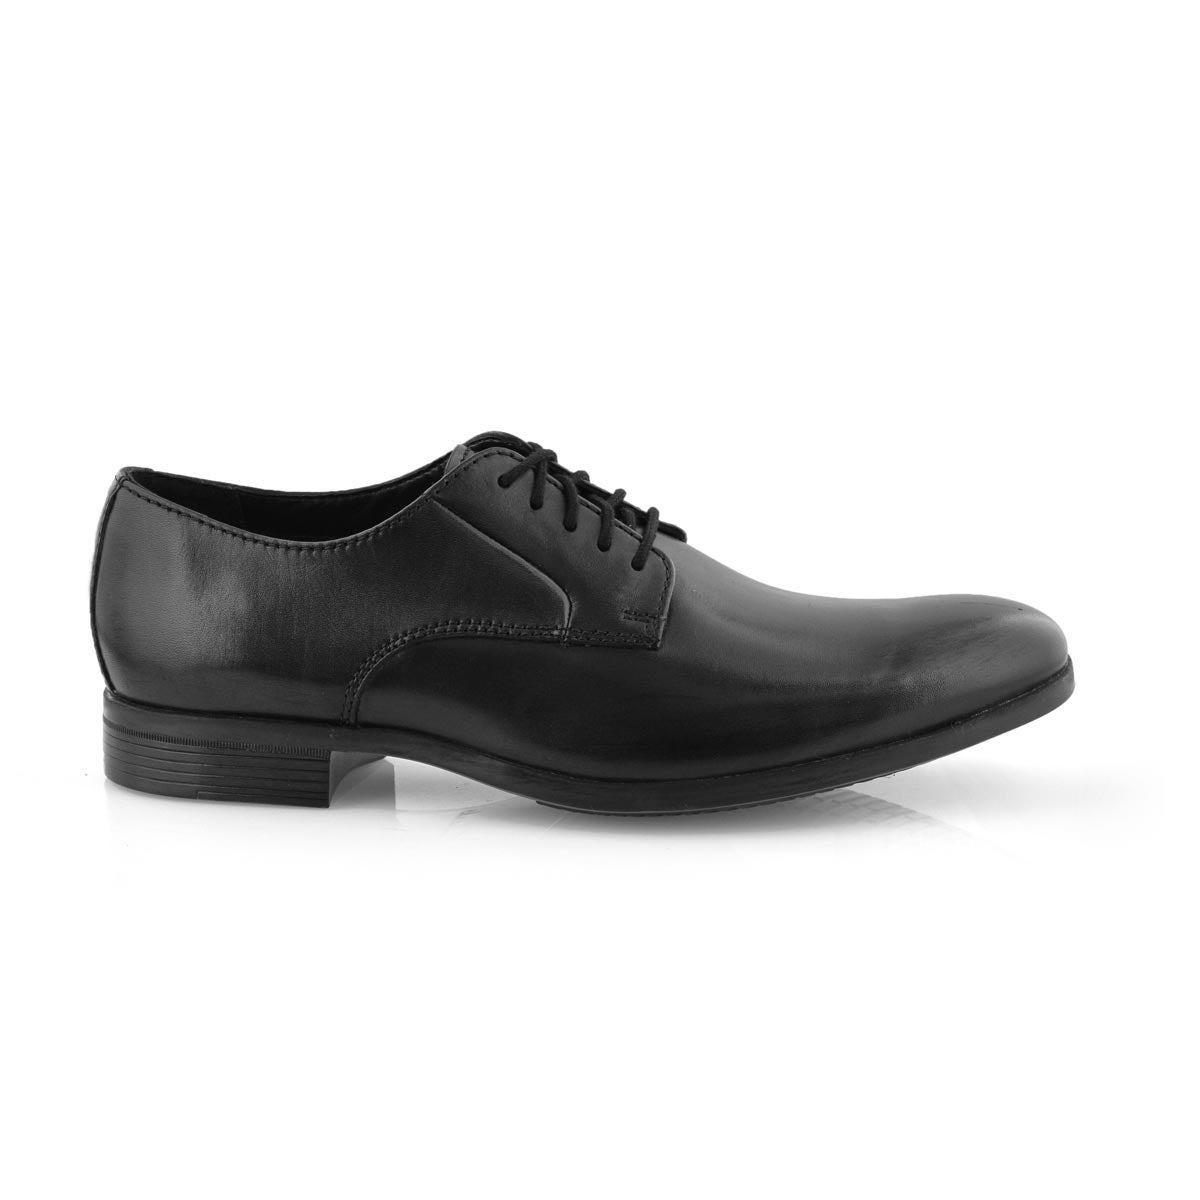 Mns Conwell Plain black dress oxford